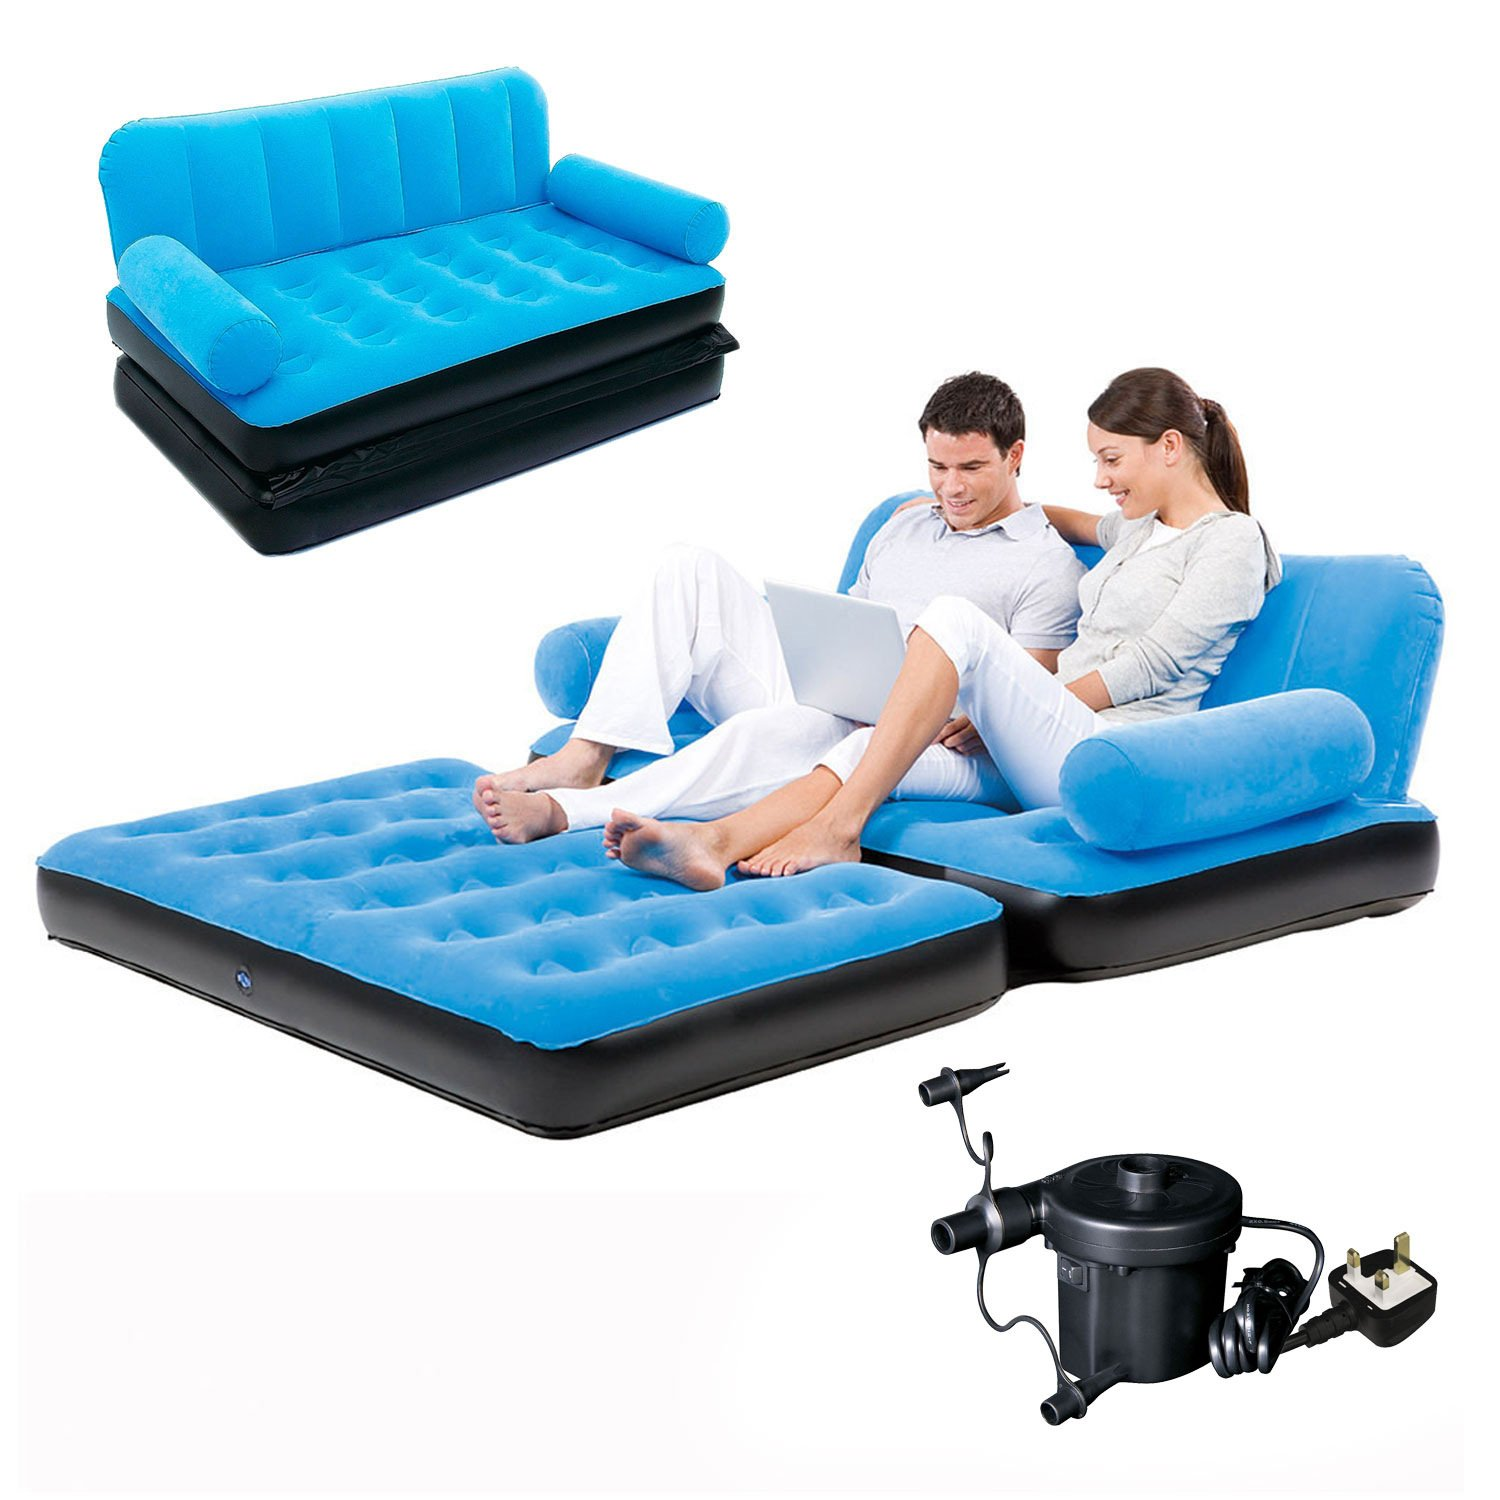 Bestway Flocked Double Inflatable Air Bed Couch Sofa 1 88 x 1 52